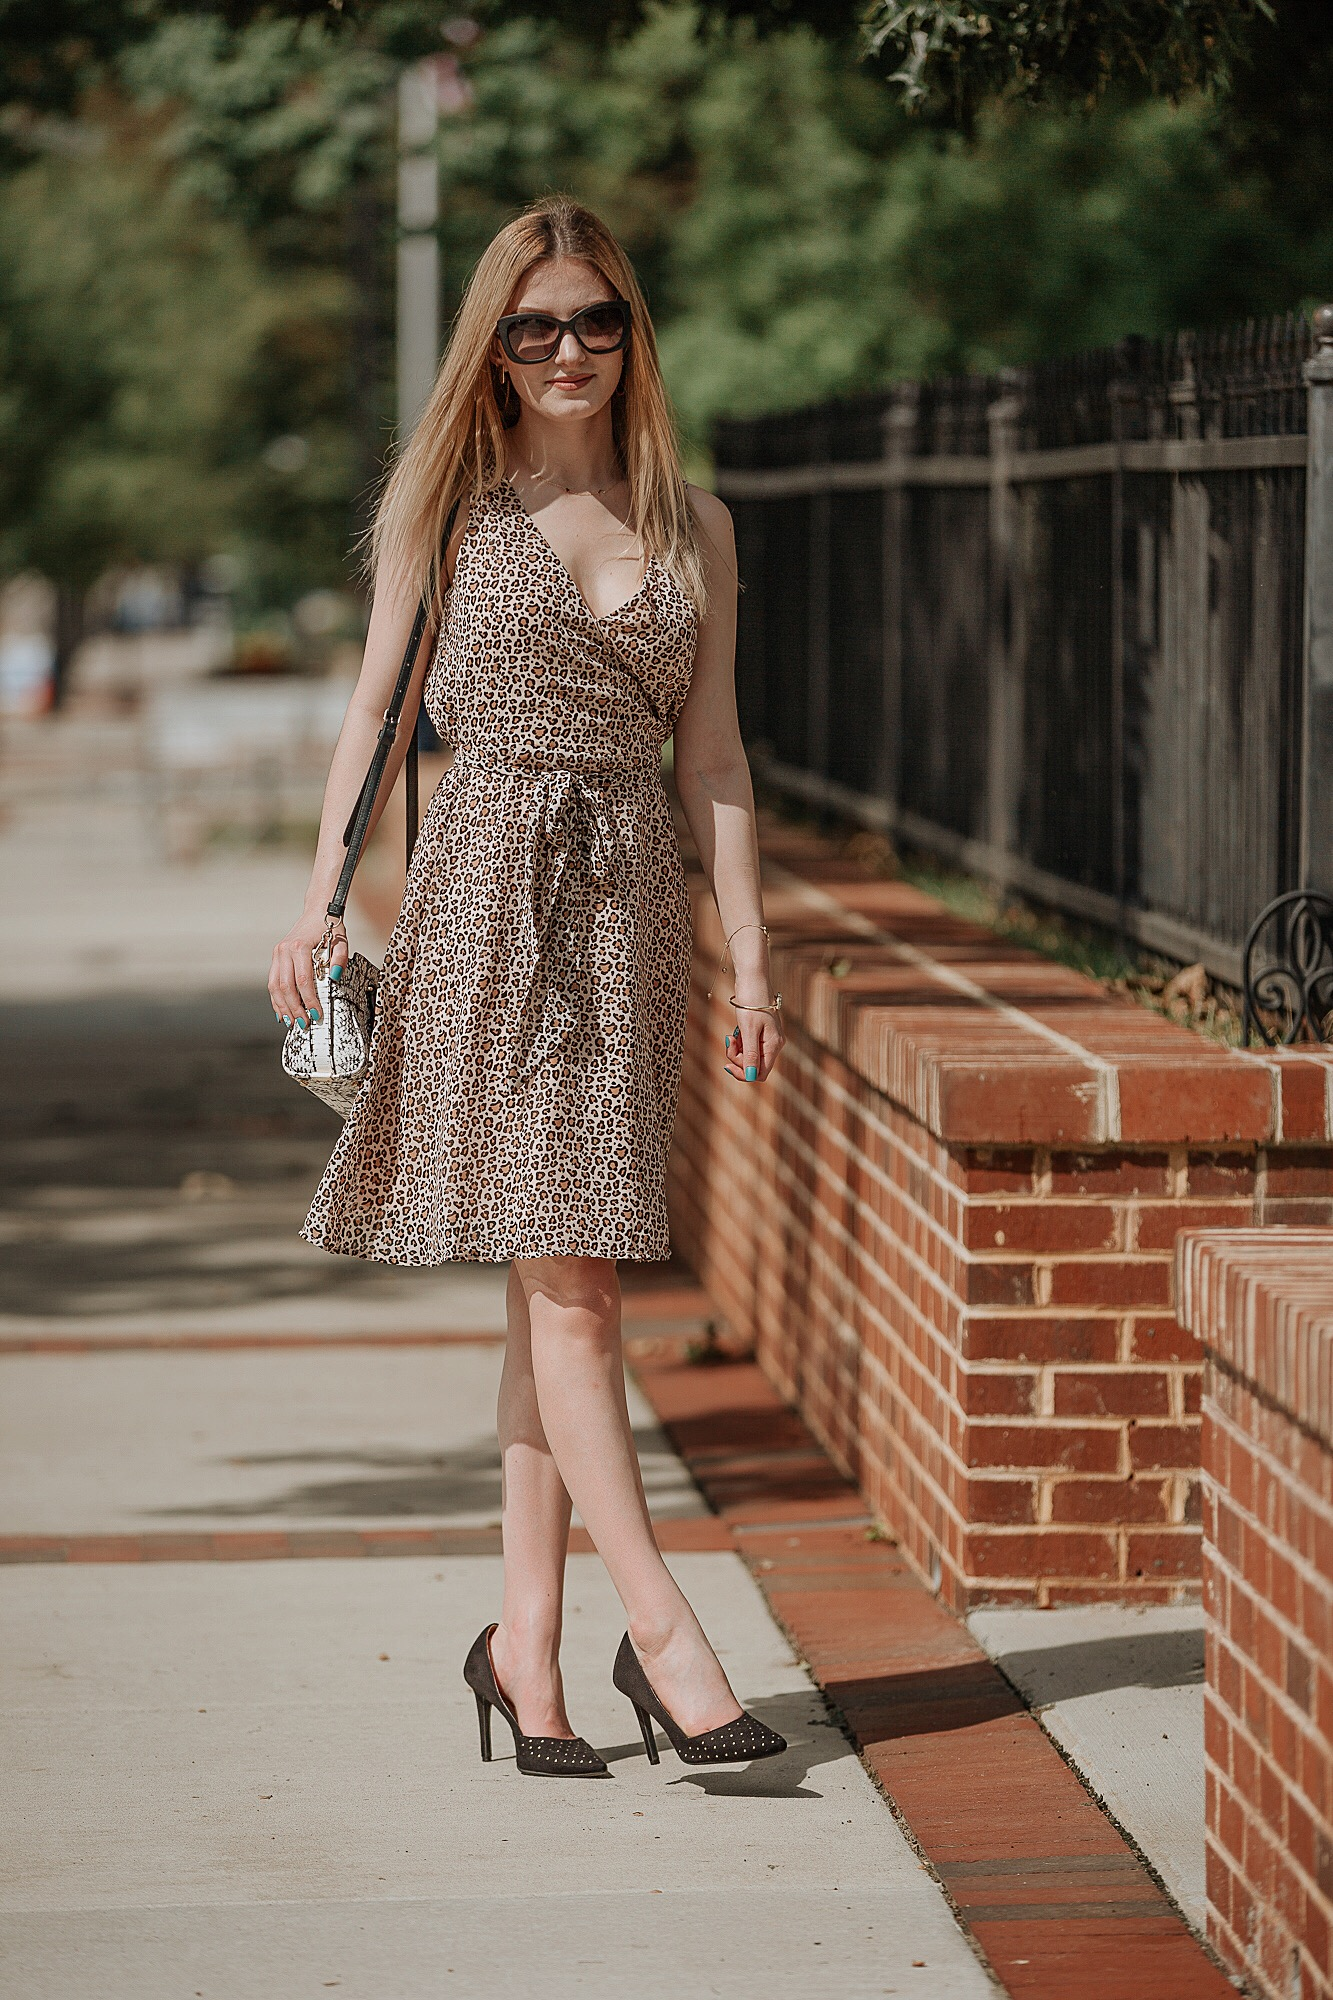 Fall 2018 Trends- animal print trend, leopard print dress from Target with a snake skin purse from Coach, and Christian Siriano heels.